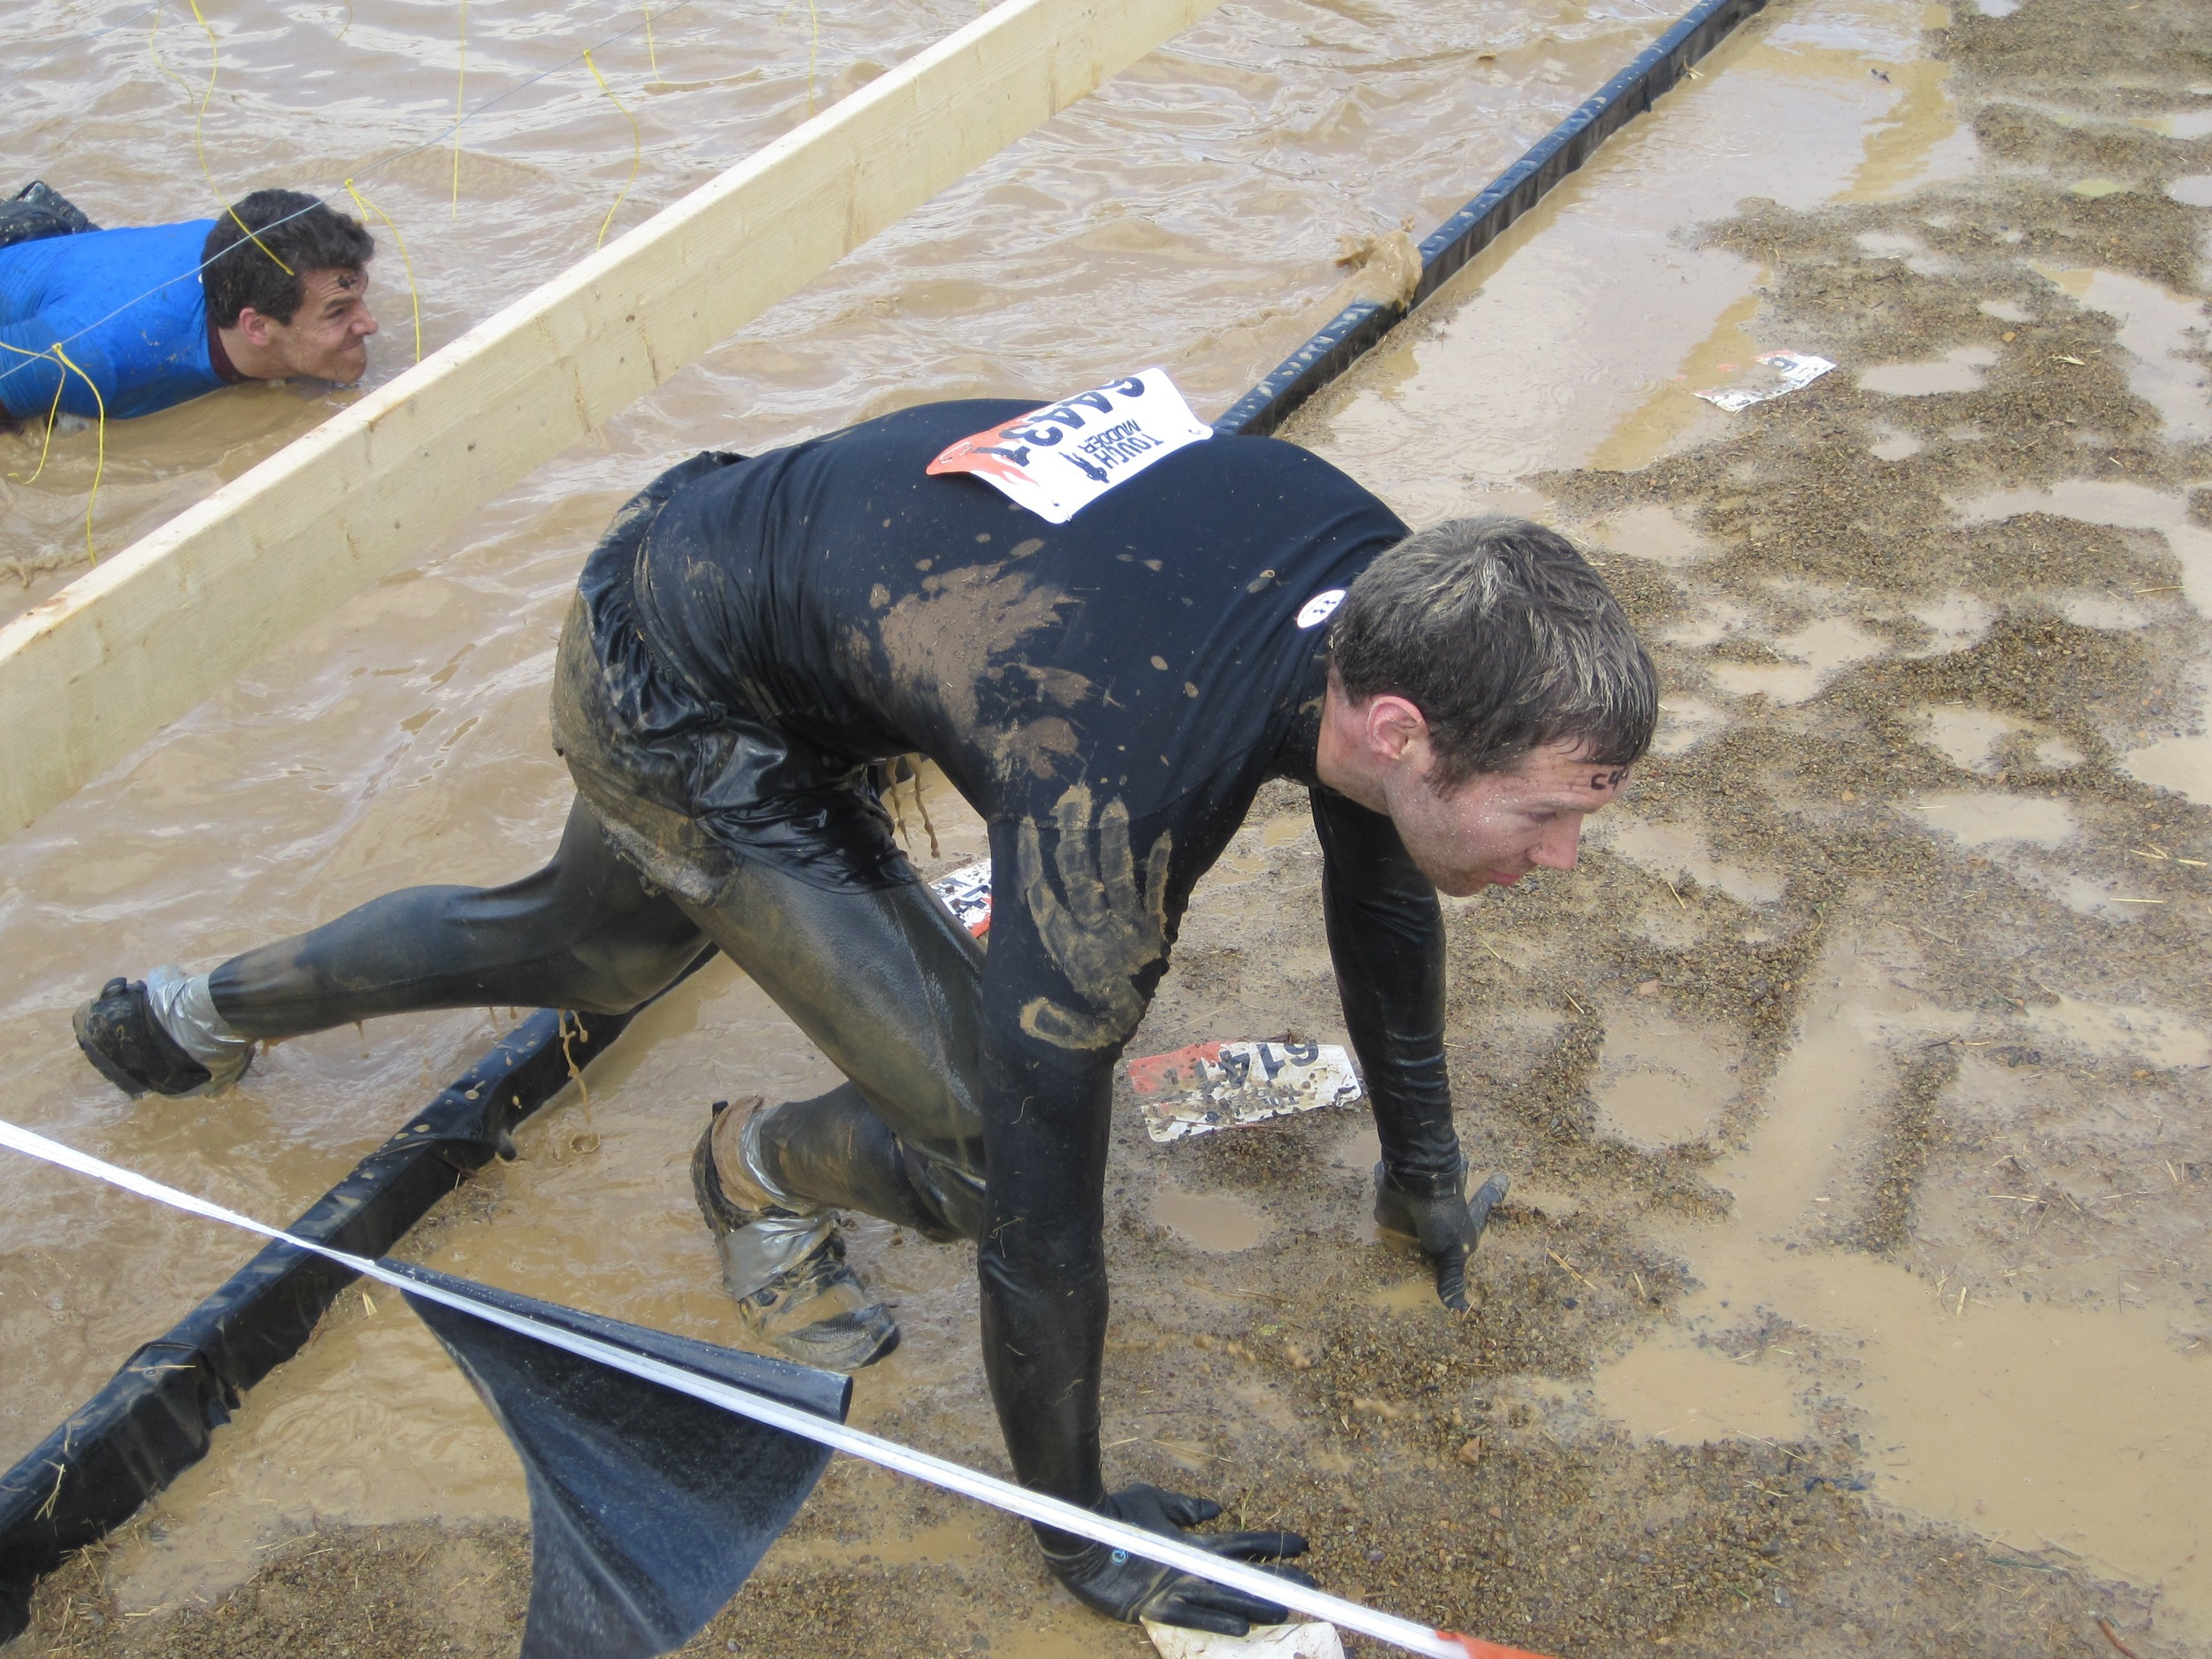 Harley Army-crawled through the Electric Eel obstacle, and indeed traversed all the obstacles, just a little faster than I did.